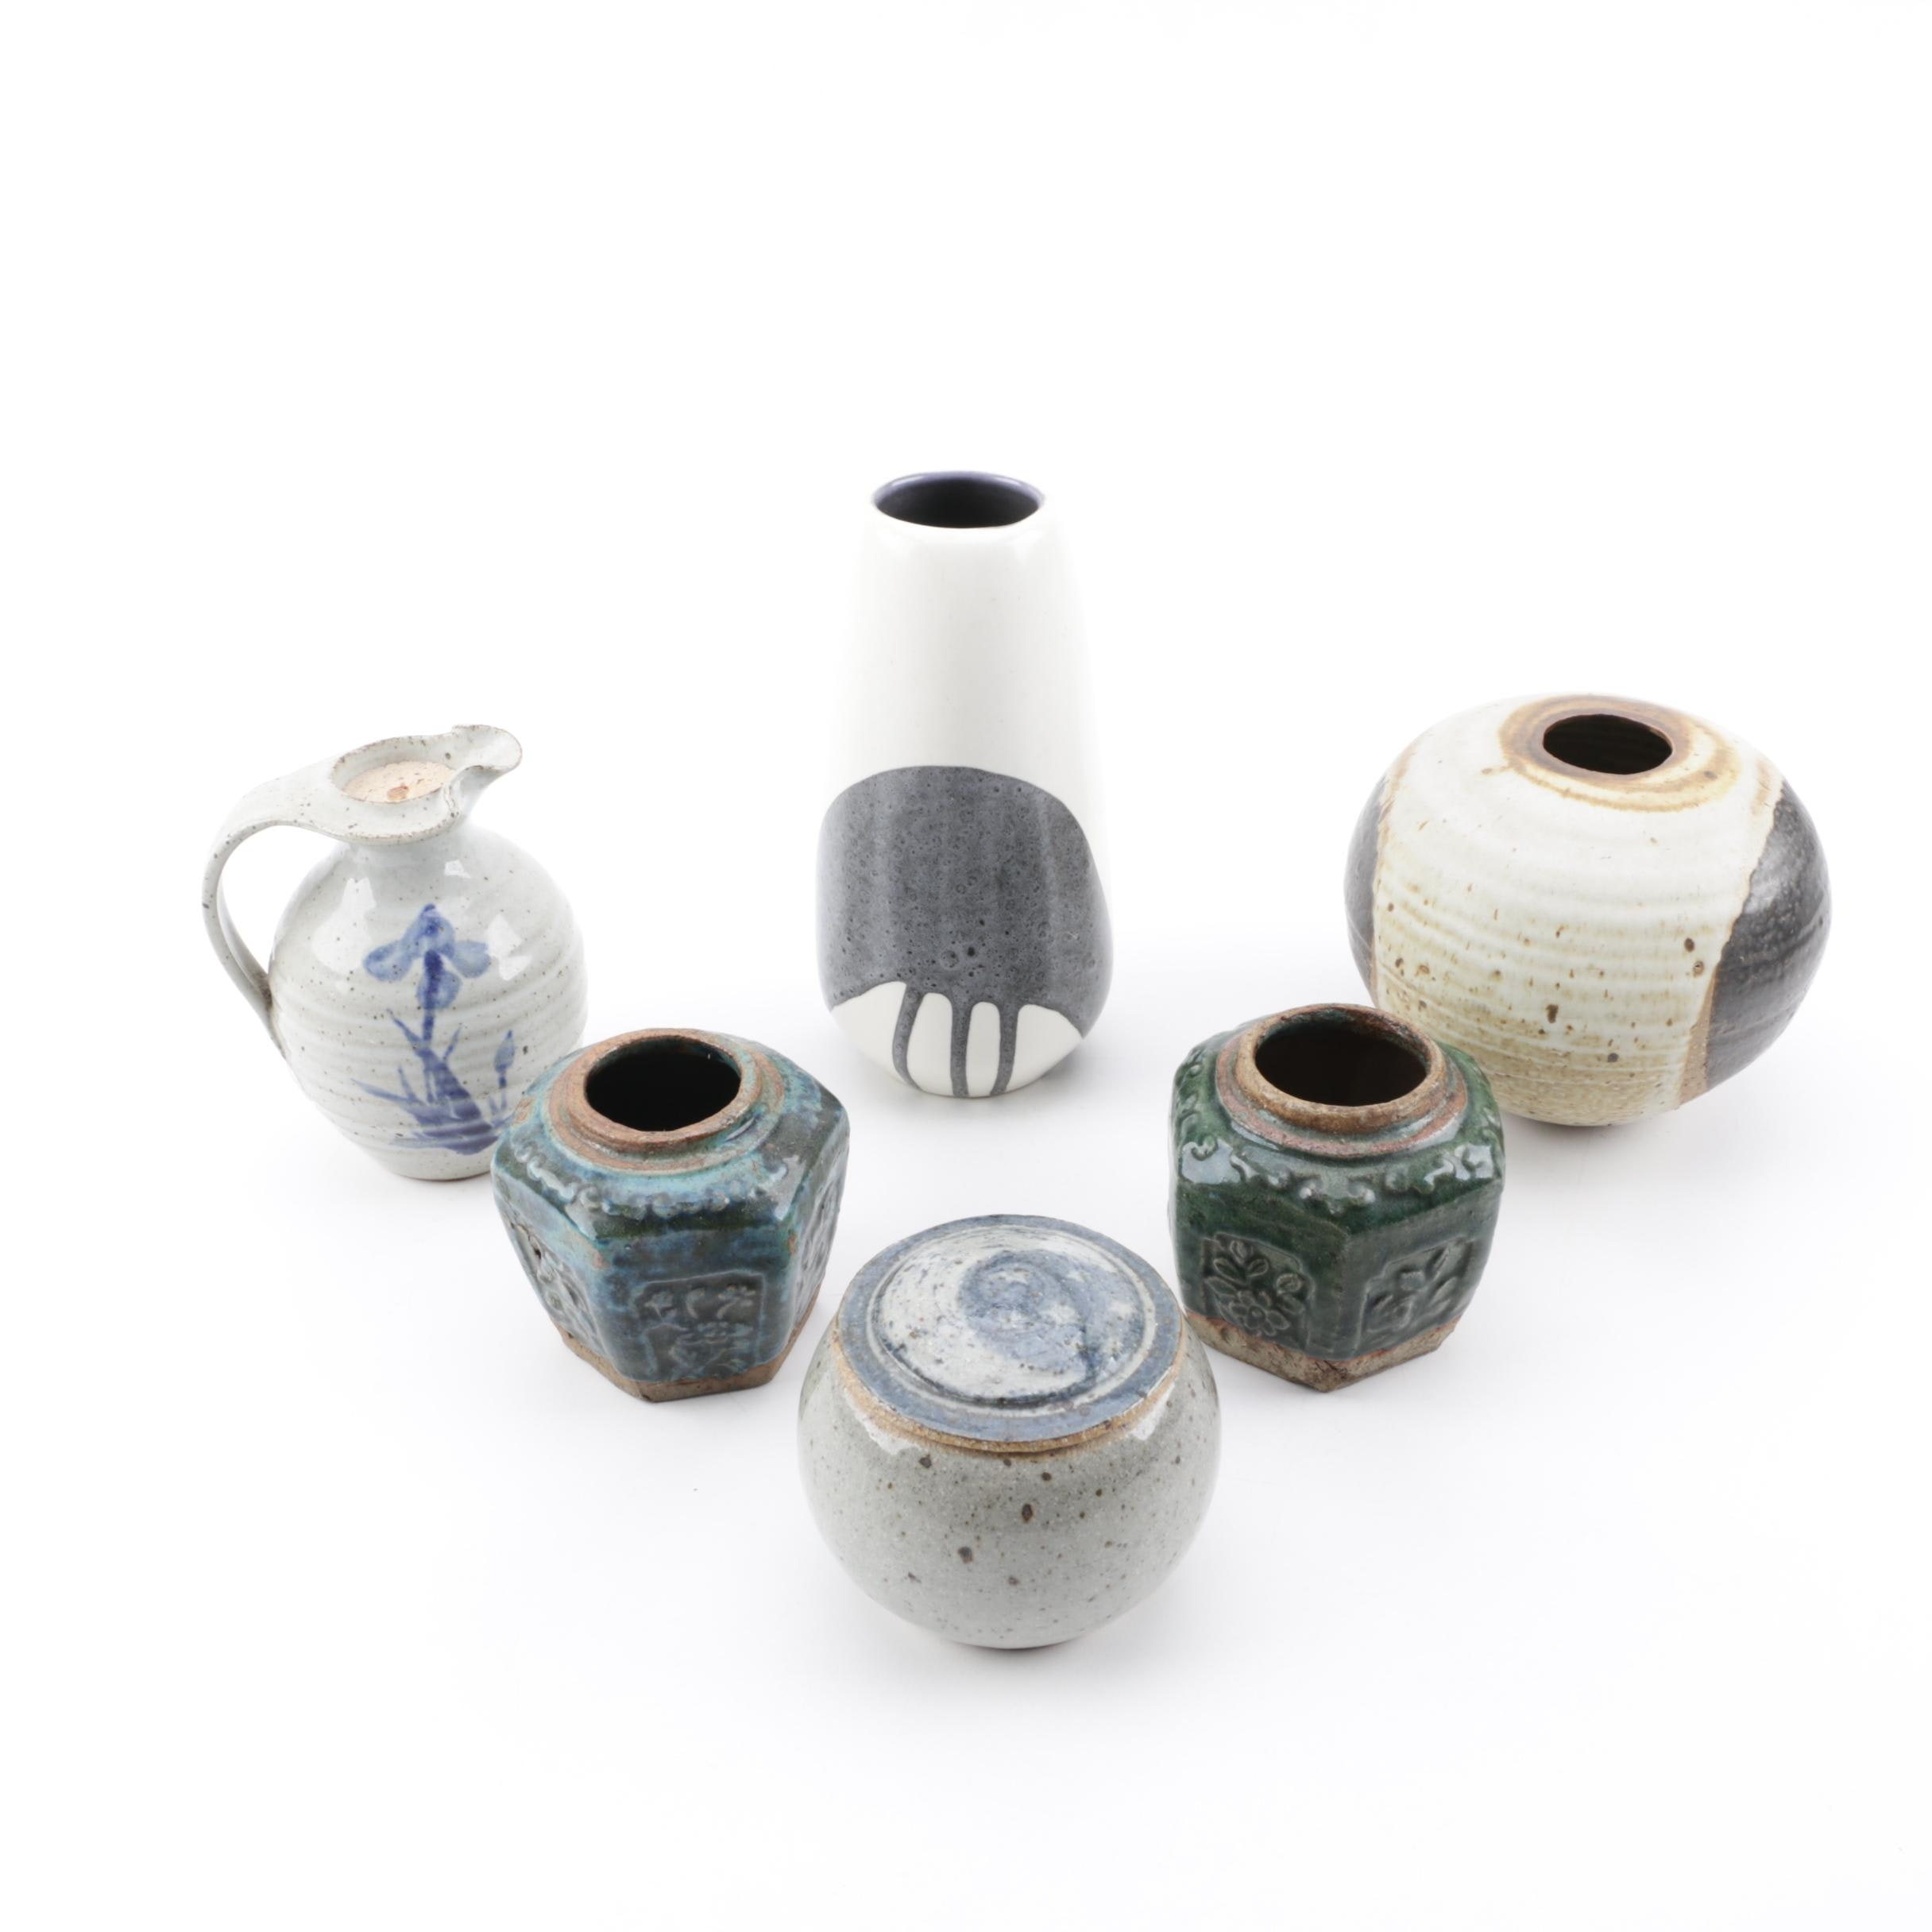 Lapid Israel Ceramic Vase with Chinese Stoneware Jars and Other Art Pottery